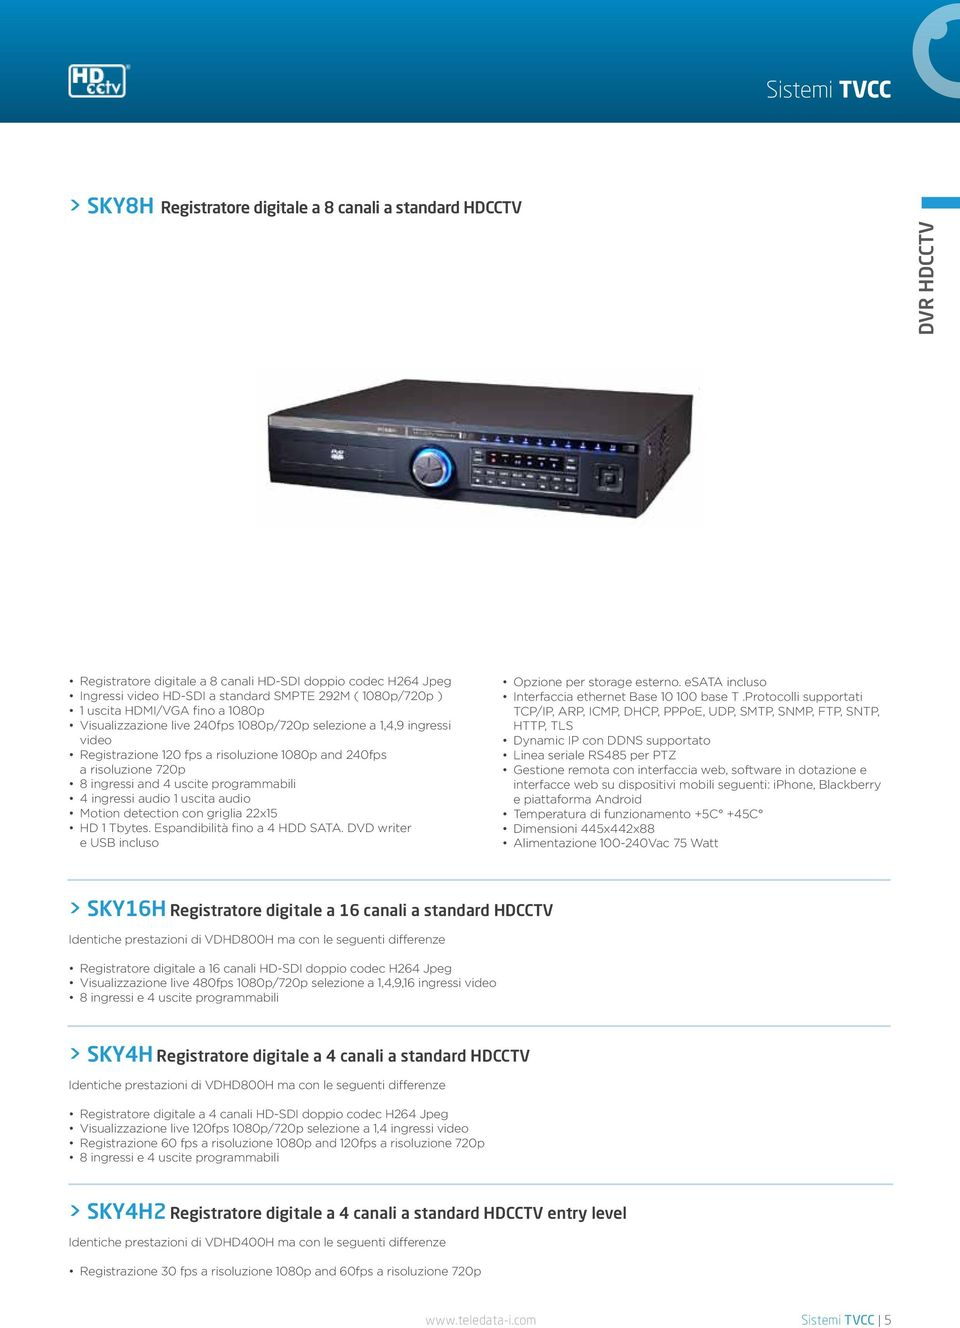 programmabili 4 ingressi audio 1 uscita audio Motion detection con griglia 22x15 HD 1 Tbytes. Espandibilità fino a 4 HDD SATA. DVD writer e USB incluso Opzione per storage esterno.